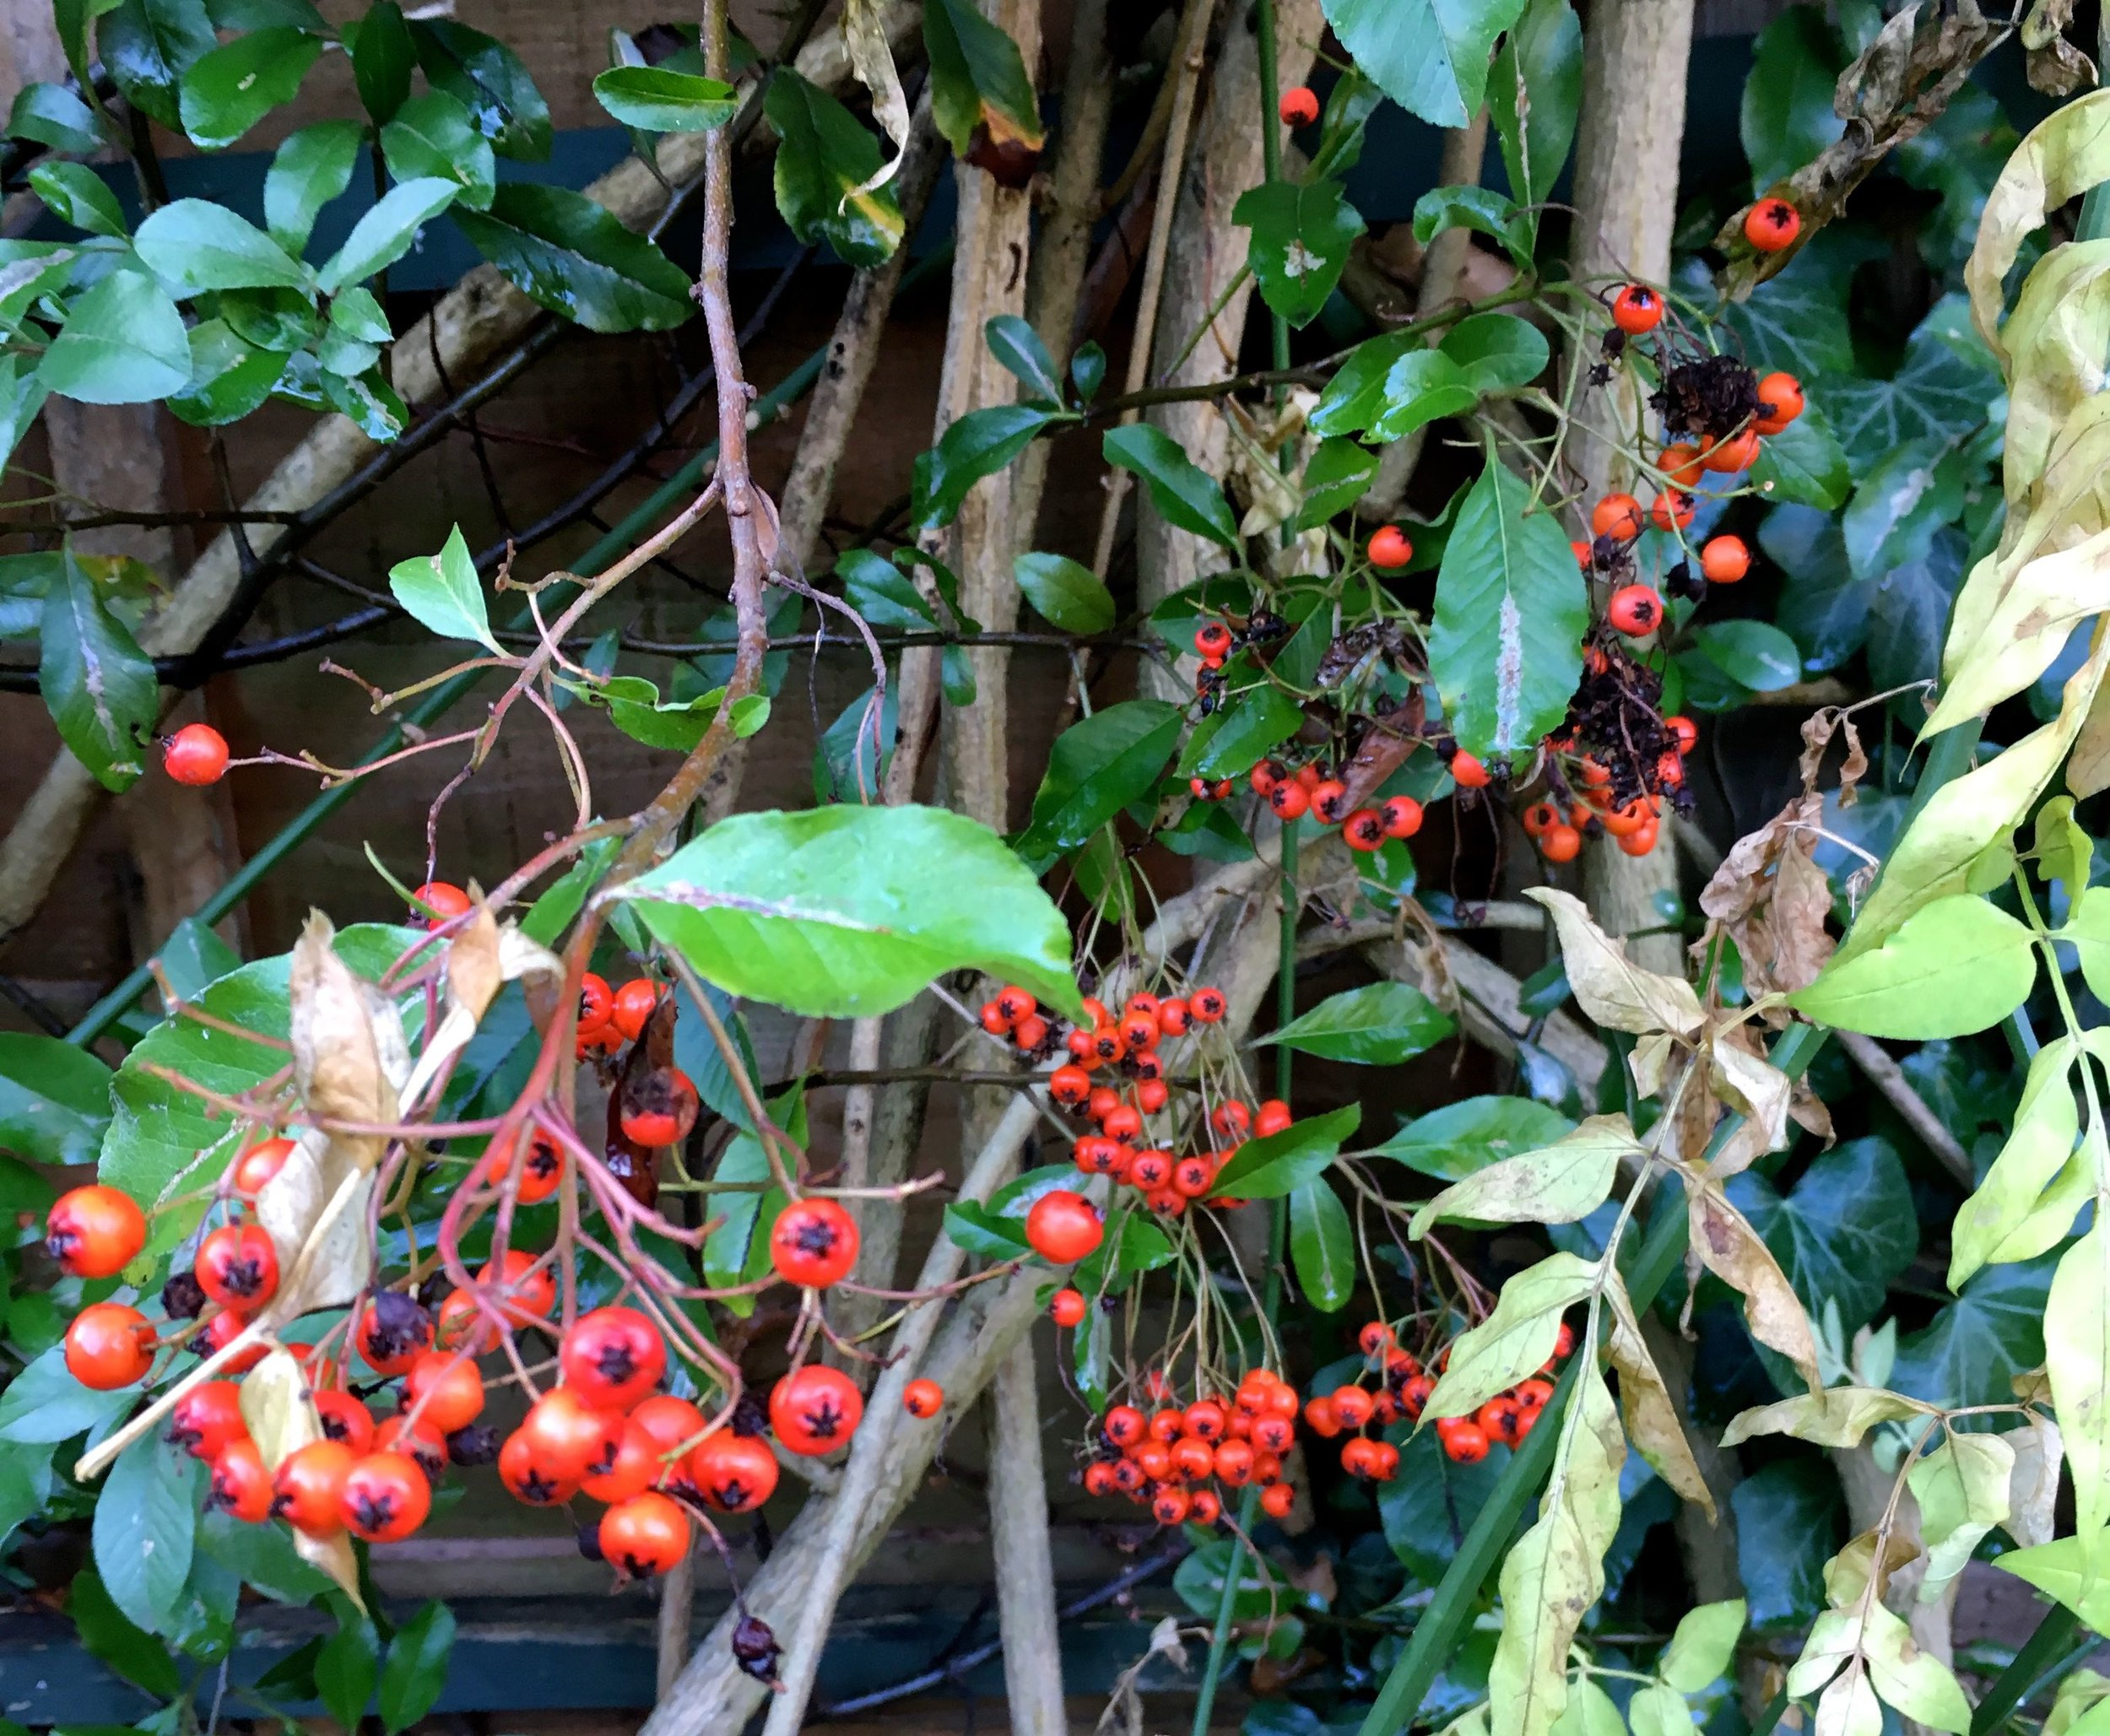 pyracantha berries growing in a sheltered spot by the fence